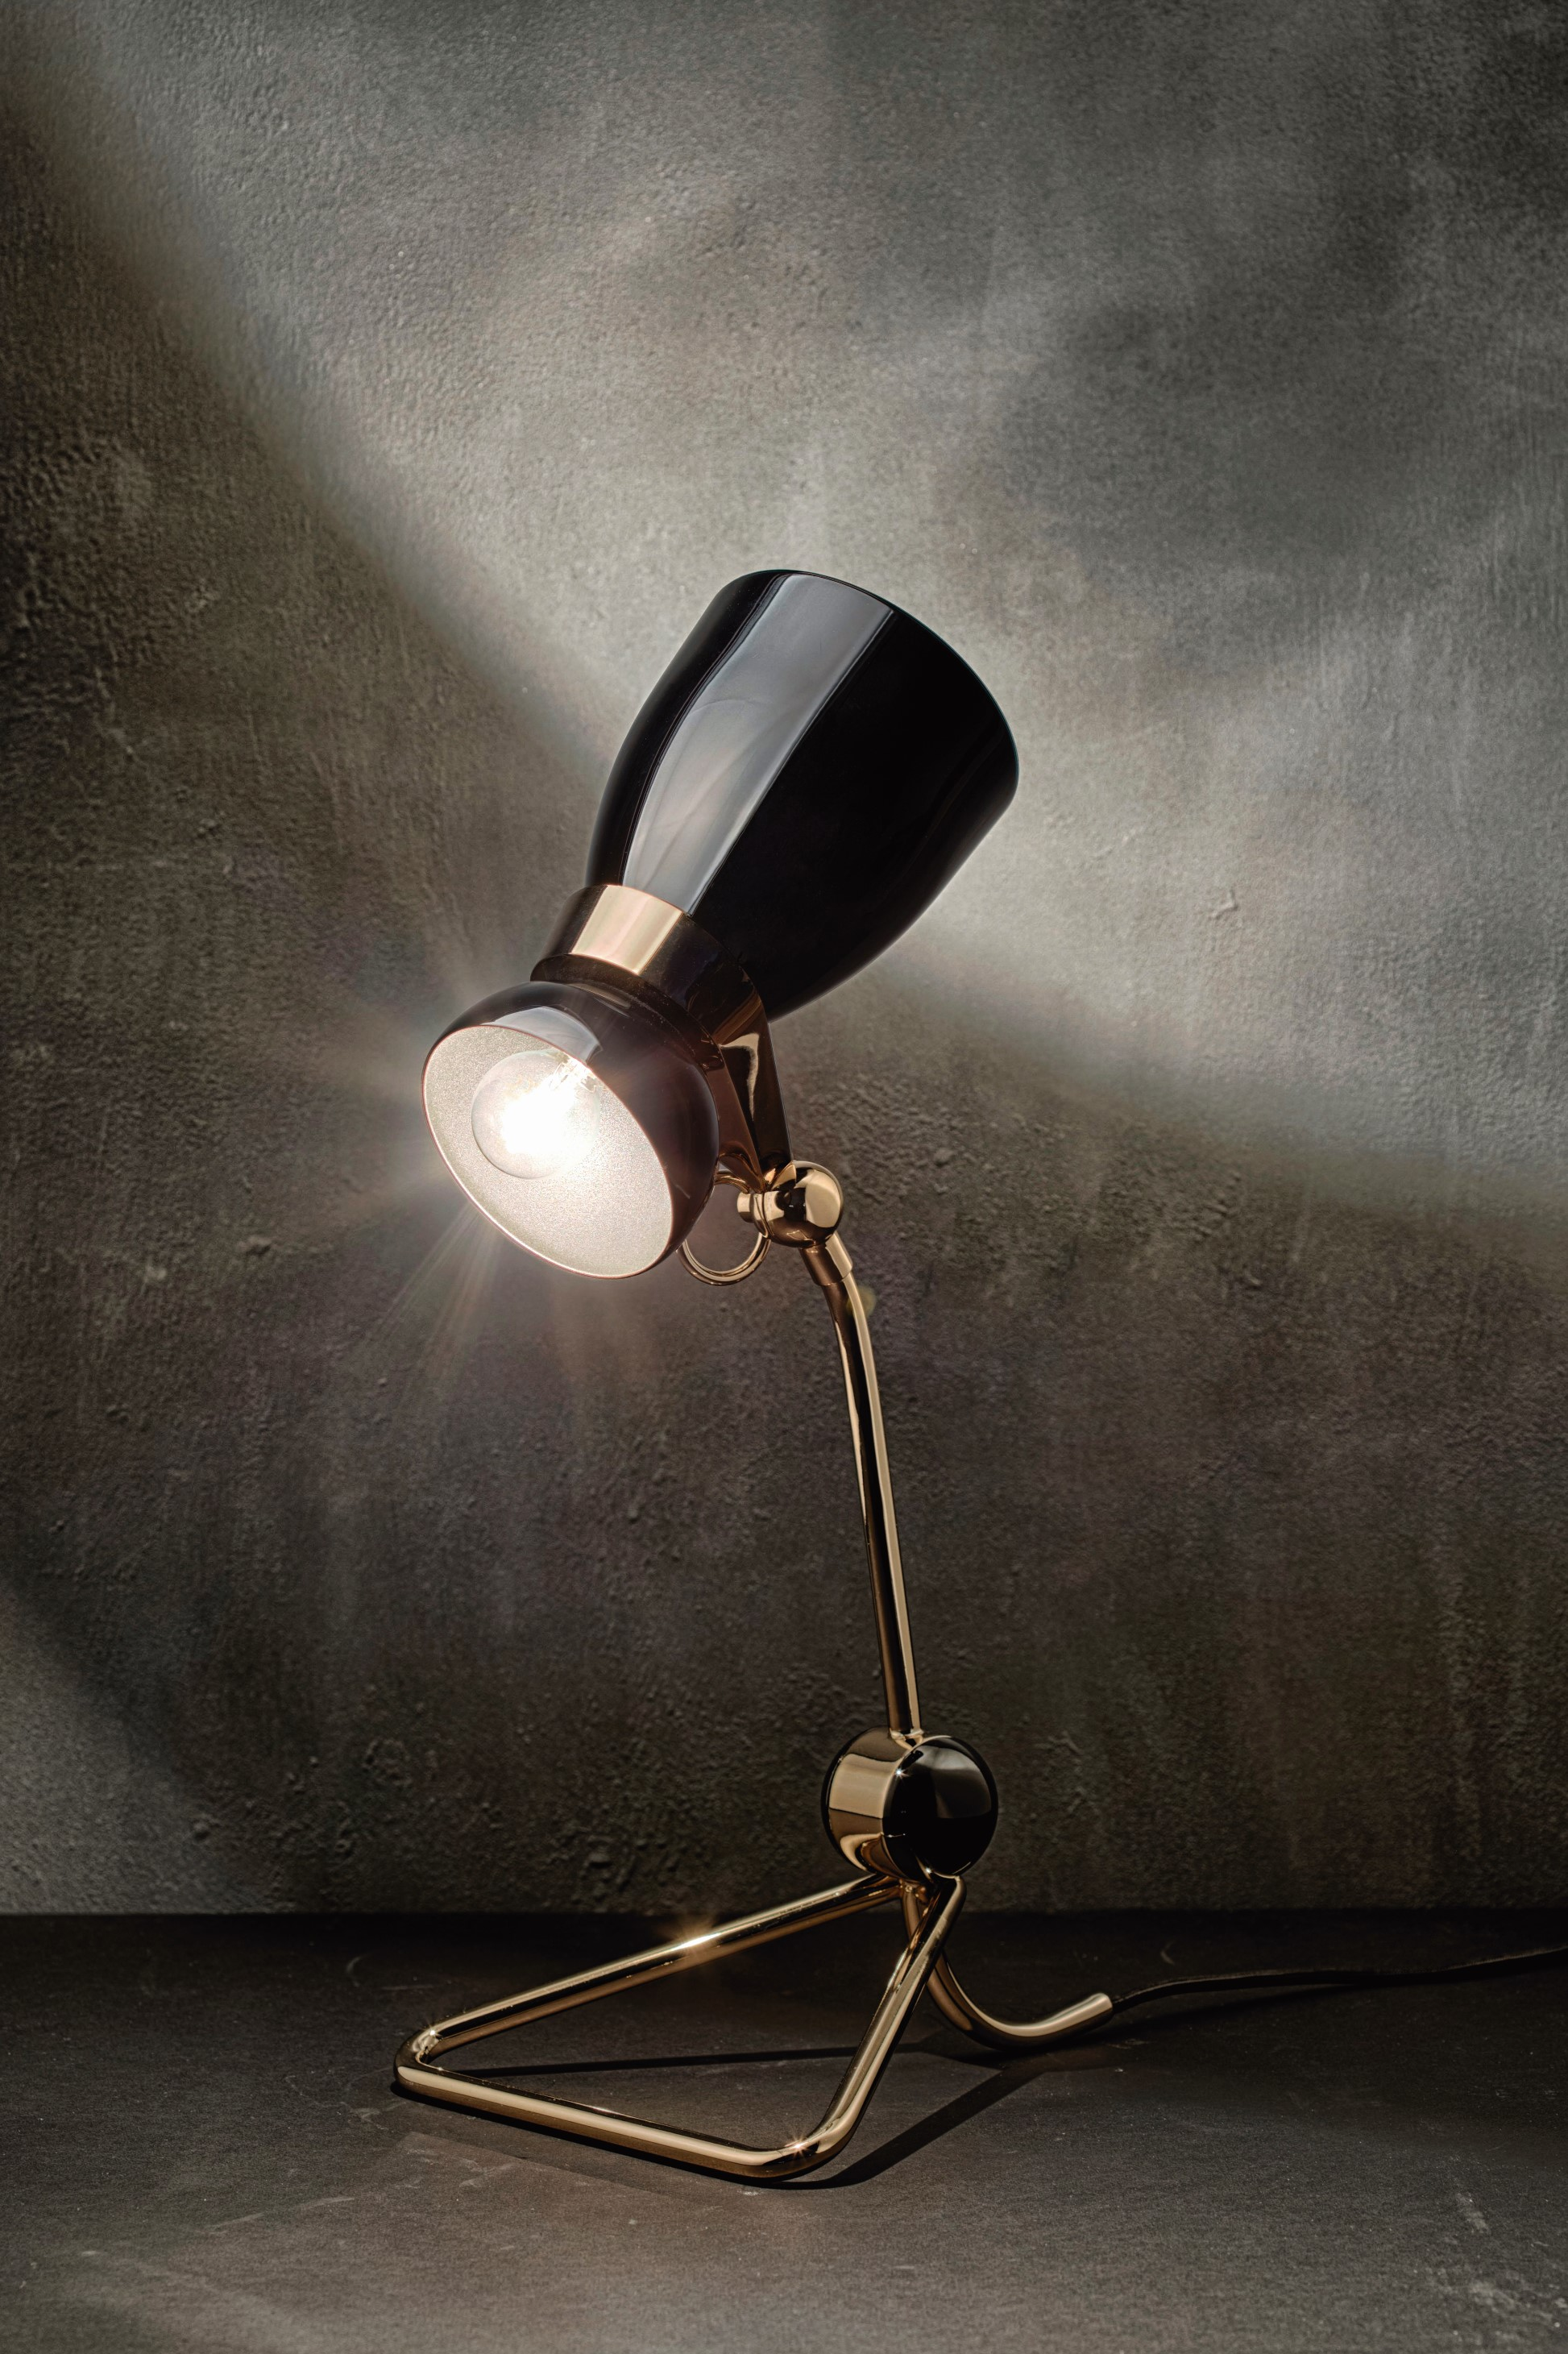 Amy Winehouse A Jazz icon transformed into a mid-century lighting design 16 mid-century lighting Amy Winehouse:Jazz Icon Transformed Into Mid-Century Lighting Design Amy Winehouse A Jazz icon transformed into a mid century lighting design 16